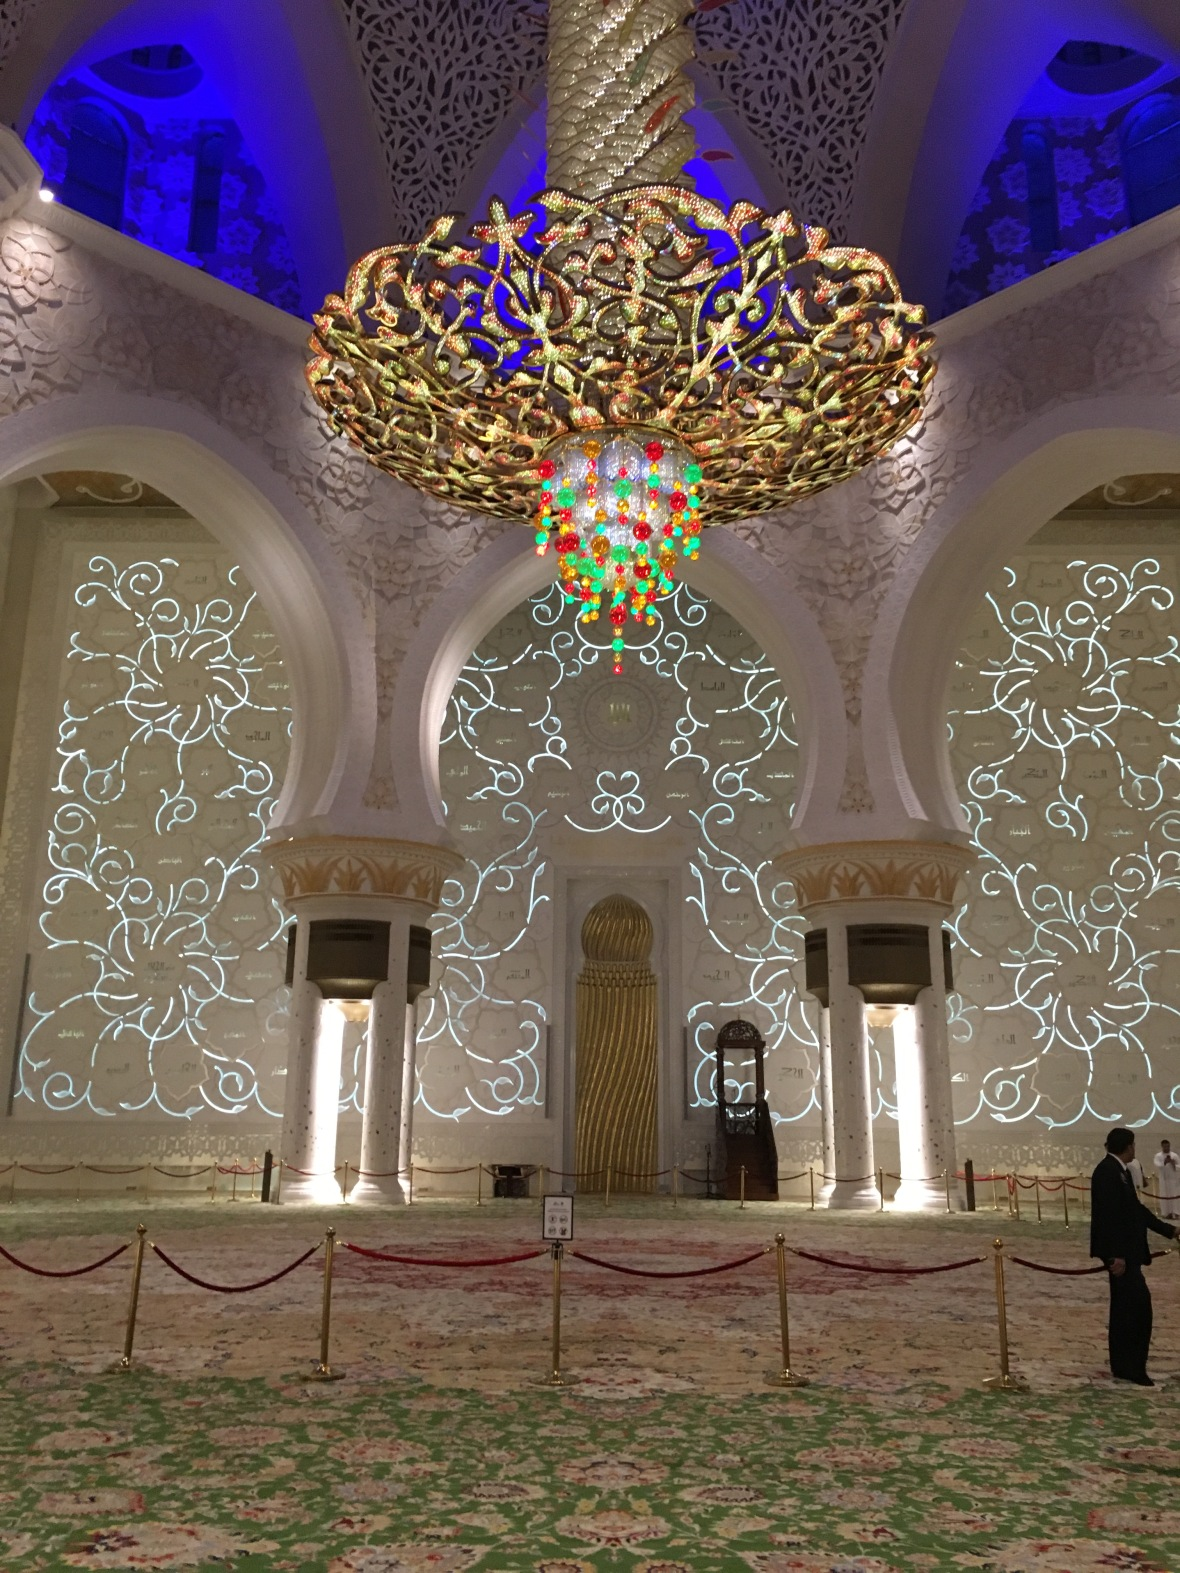 Names of God, Sheikh Zayed Grand Mosque, Abu Dhabi, UAE